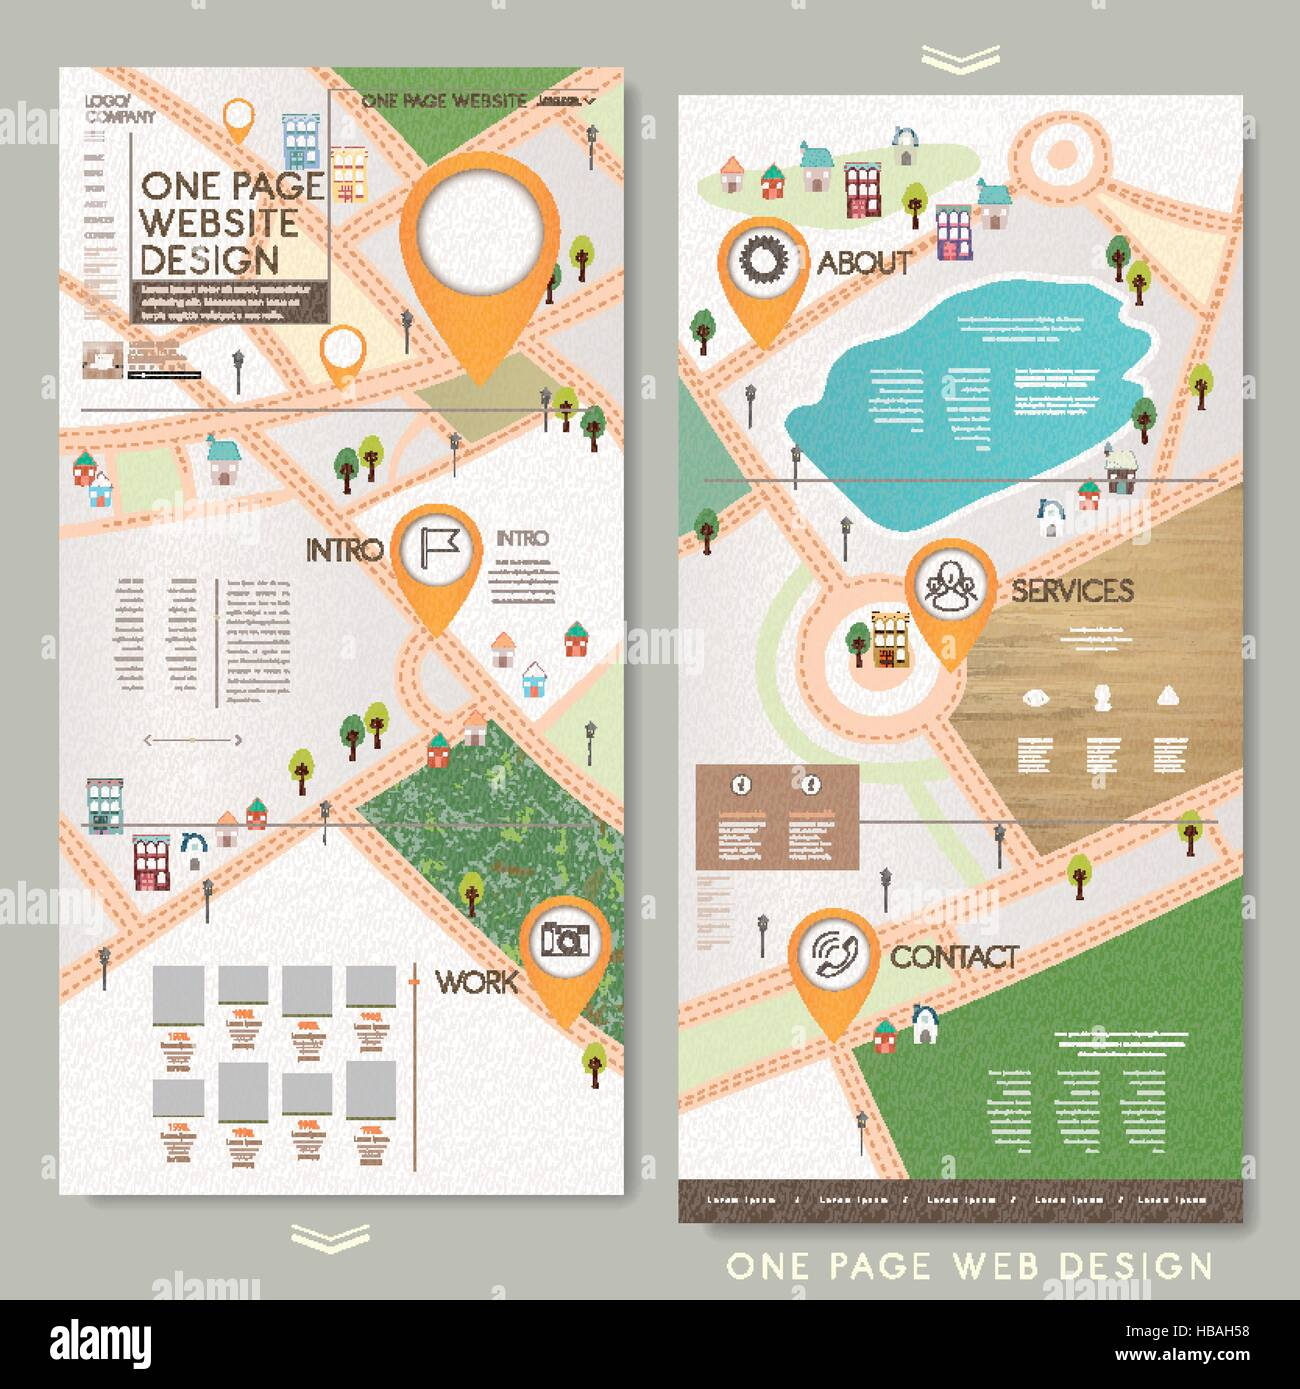 childlike one page website template design with lovely town map